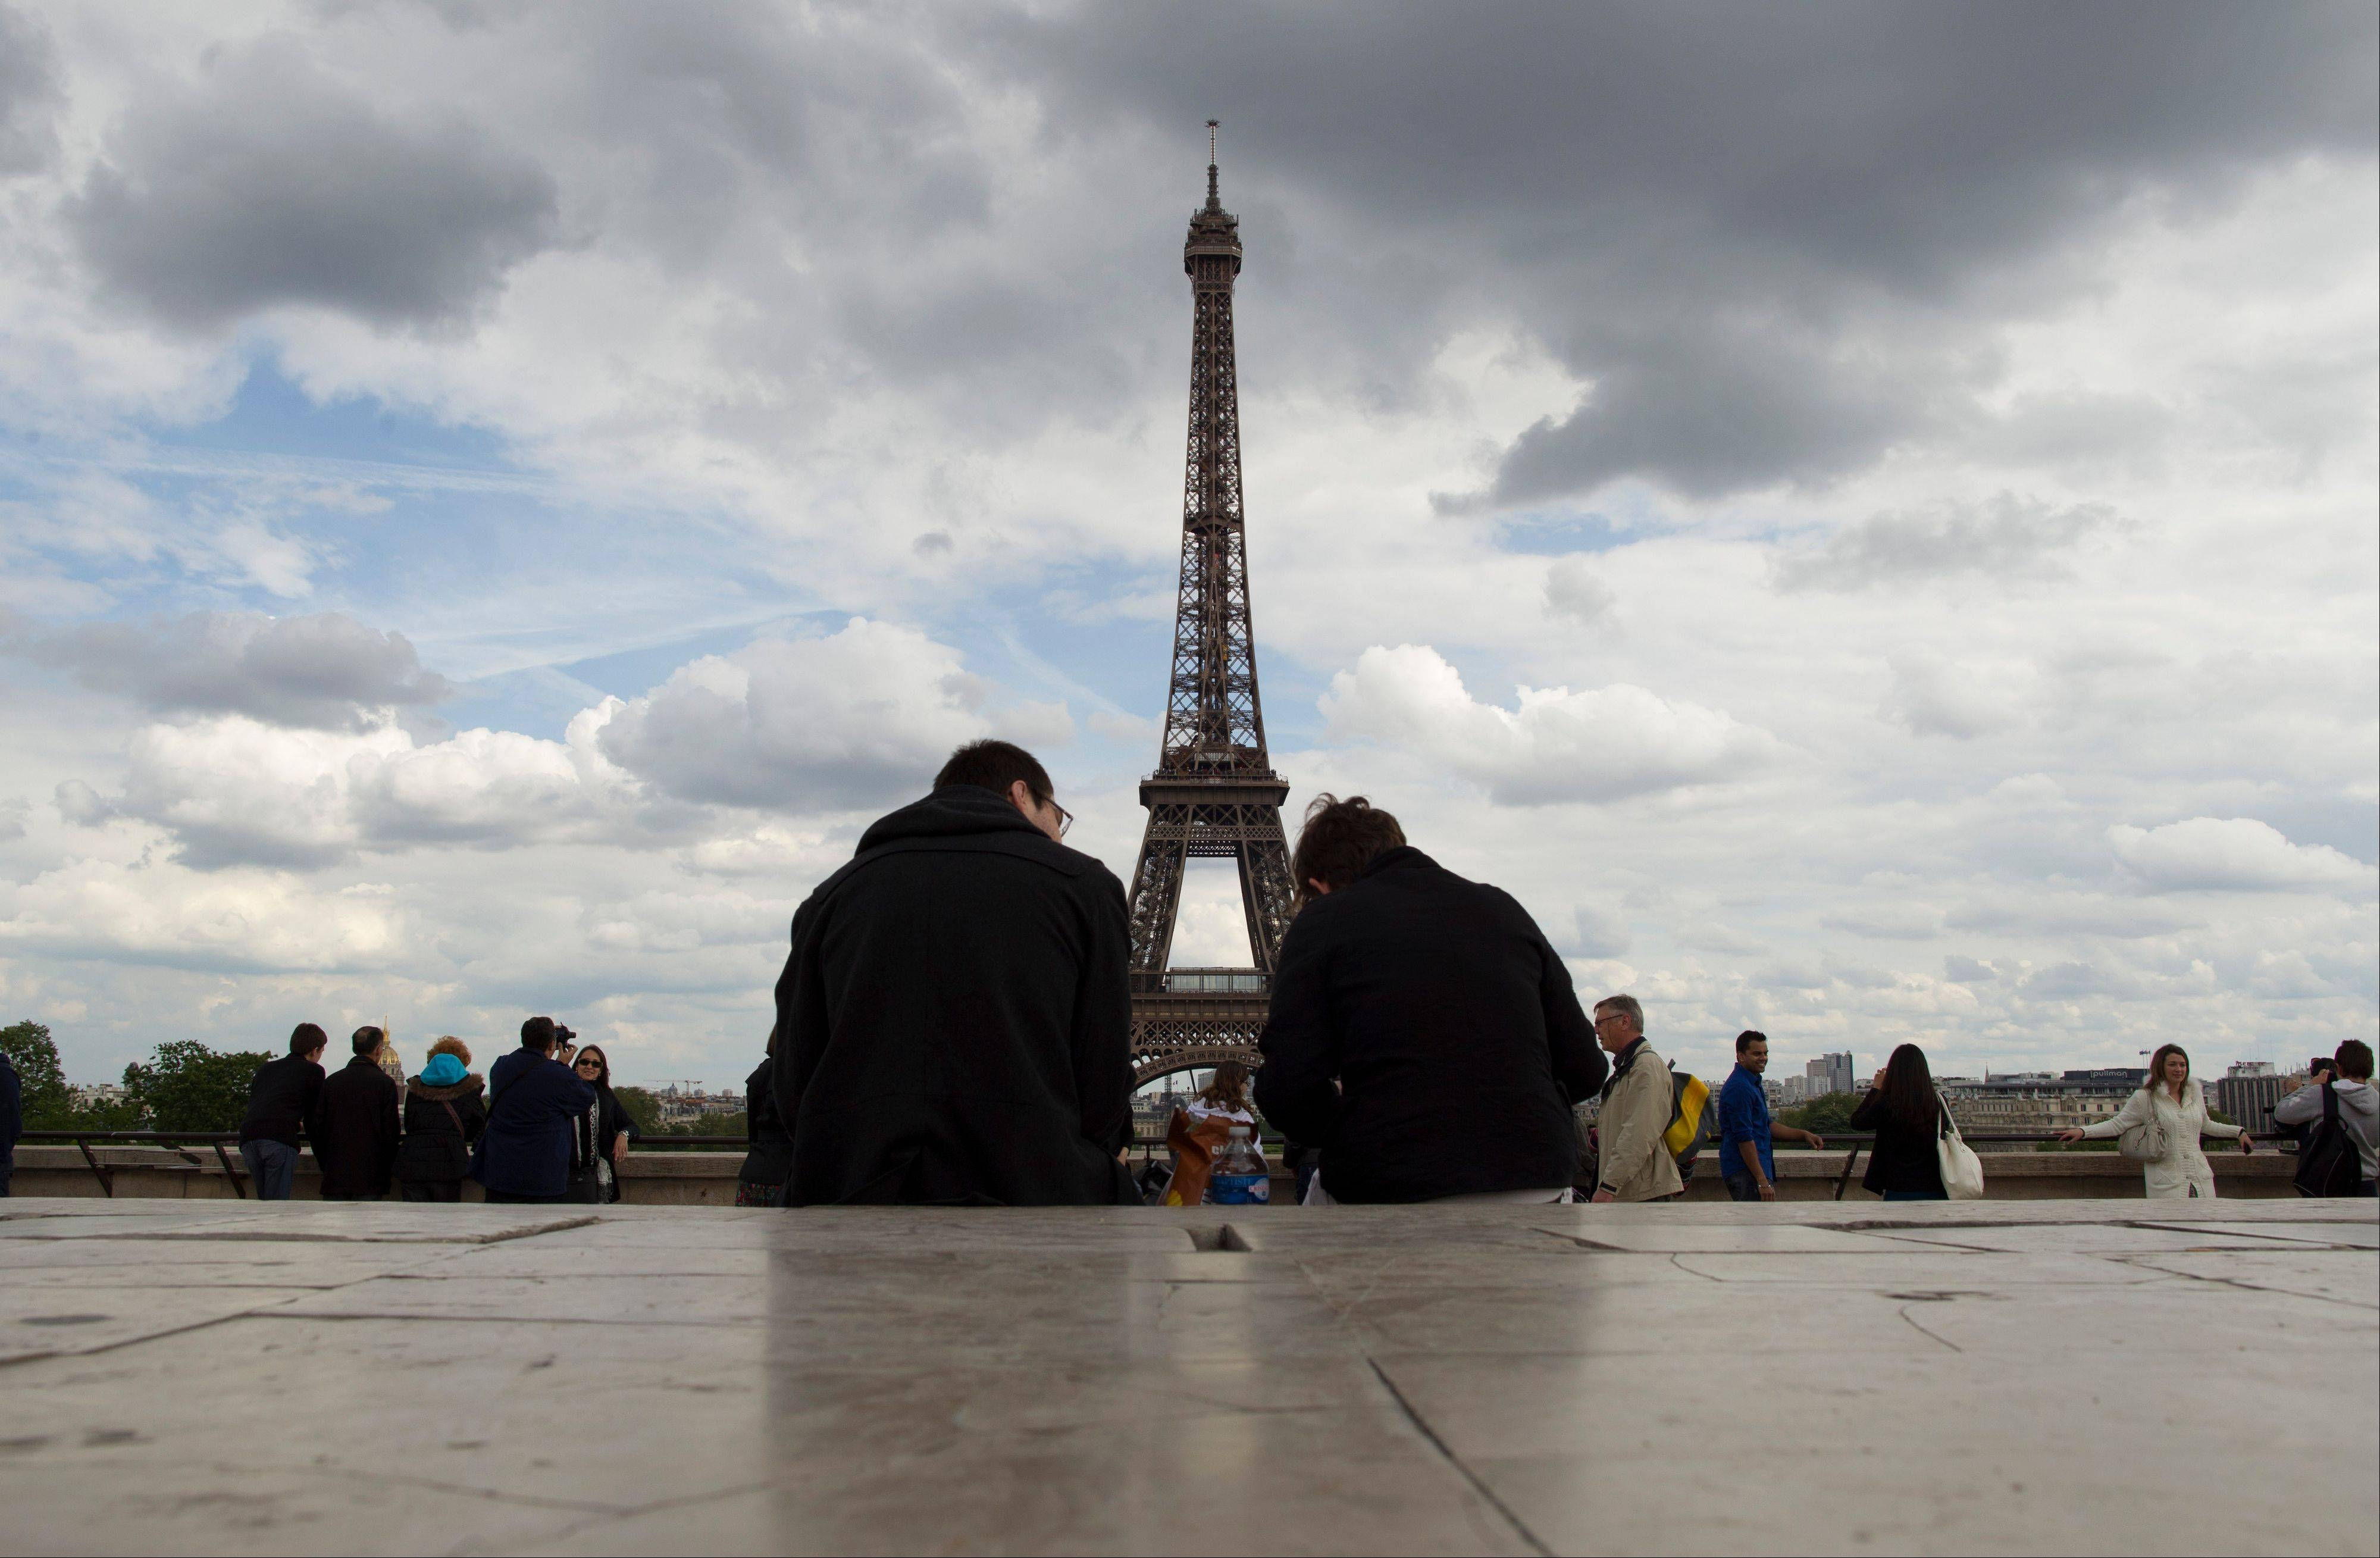 Visitors admire the view of the Eiffel Tower in Paris.